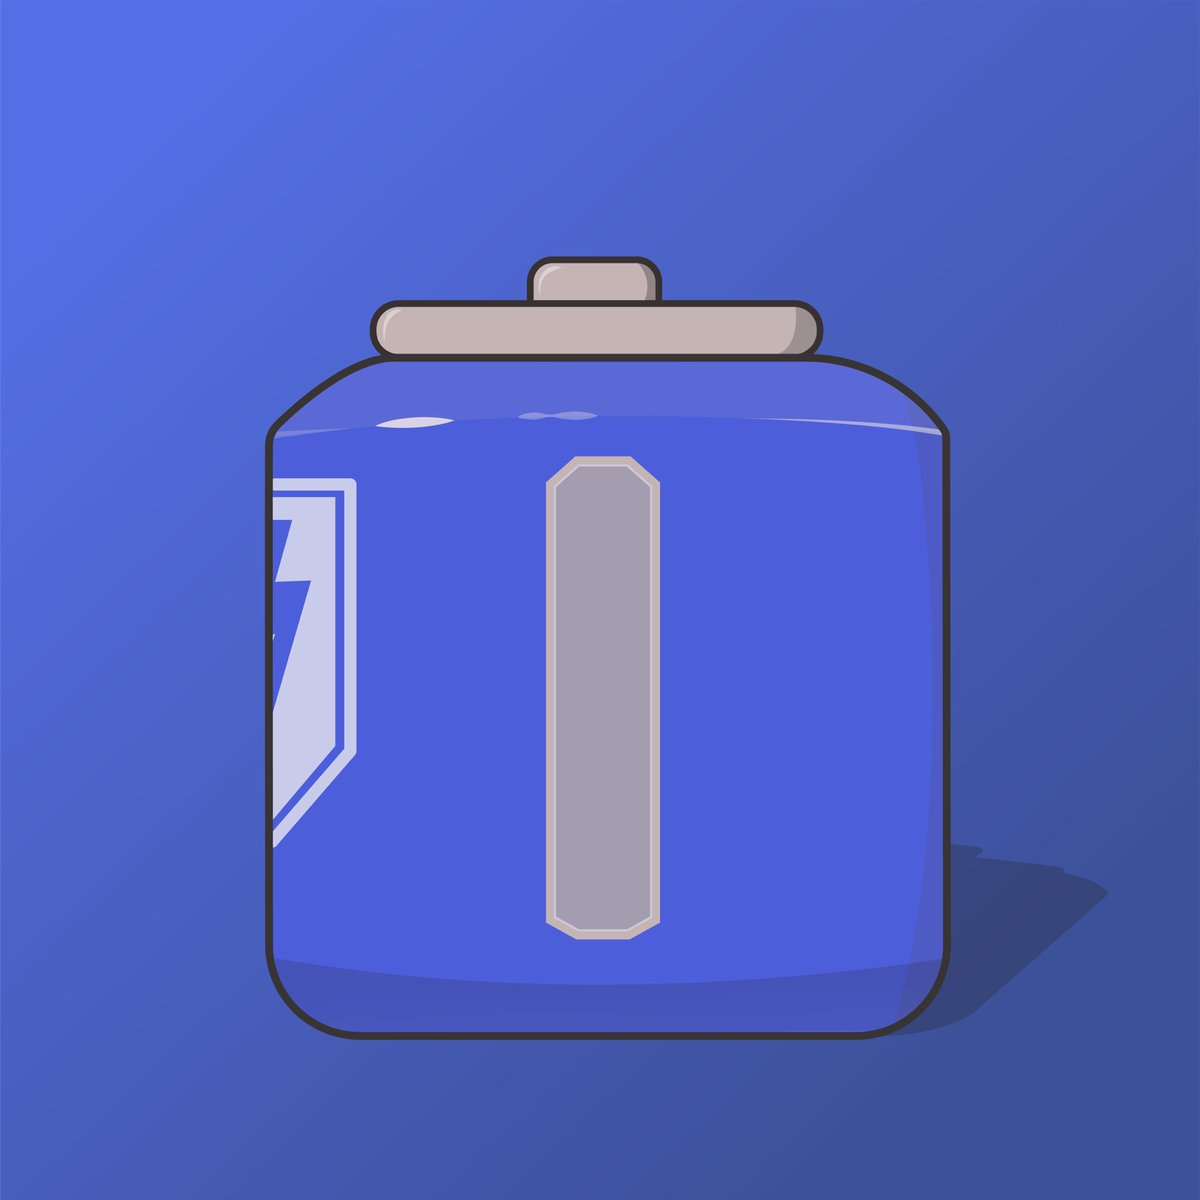 Here's the final version of the shield cell from apex! I have some cool new ideas coming so be sure to be on the lookout for them!!  . . . #apexlegends #apex #apexlegendscommunity #apexfanart #fanart #game #gameart #vector #clean #gradient #blue #illustration #illustrated https://t.co/QpXU7JQNge